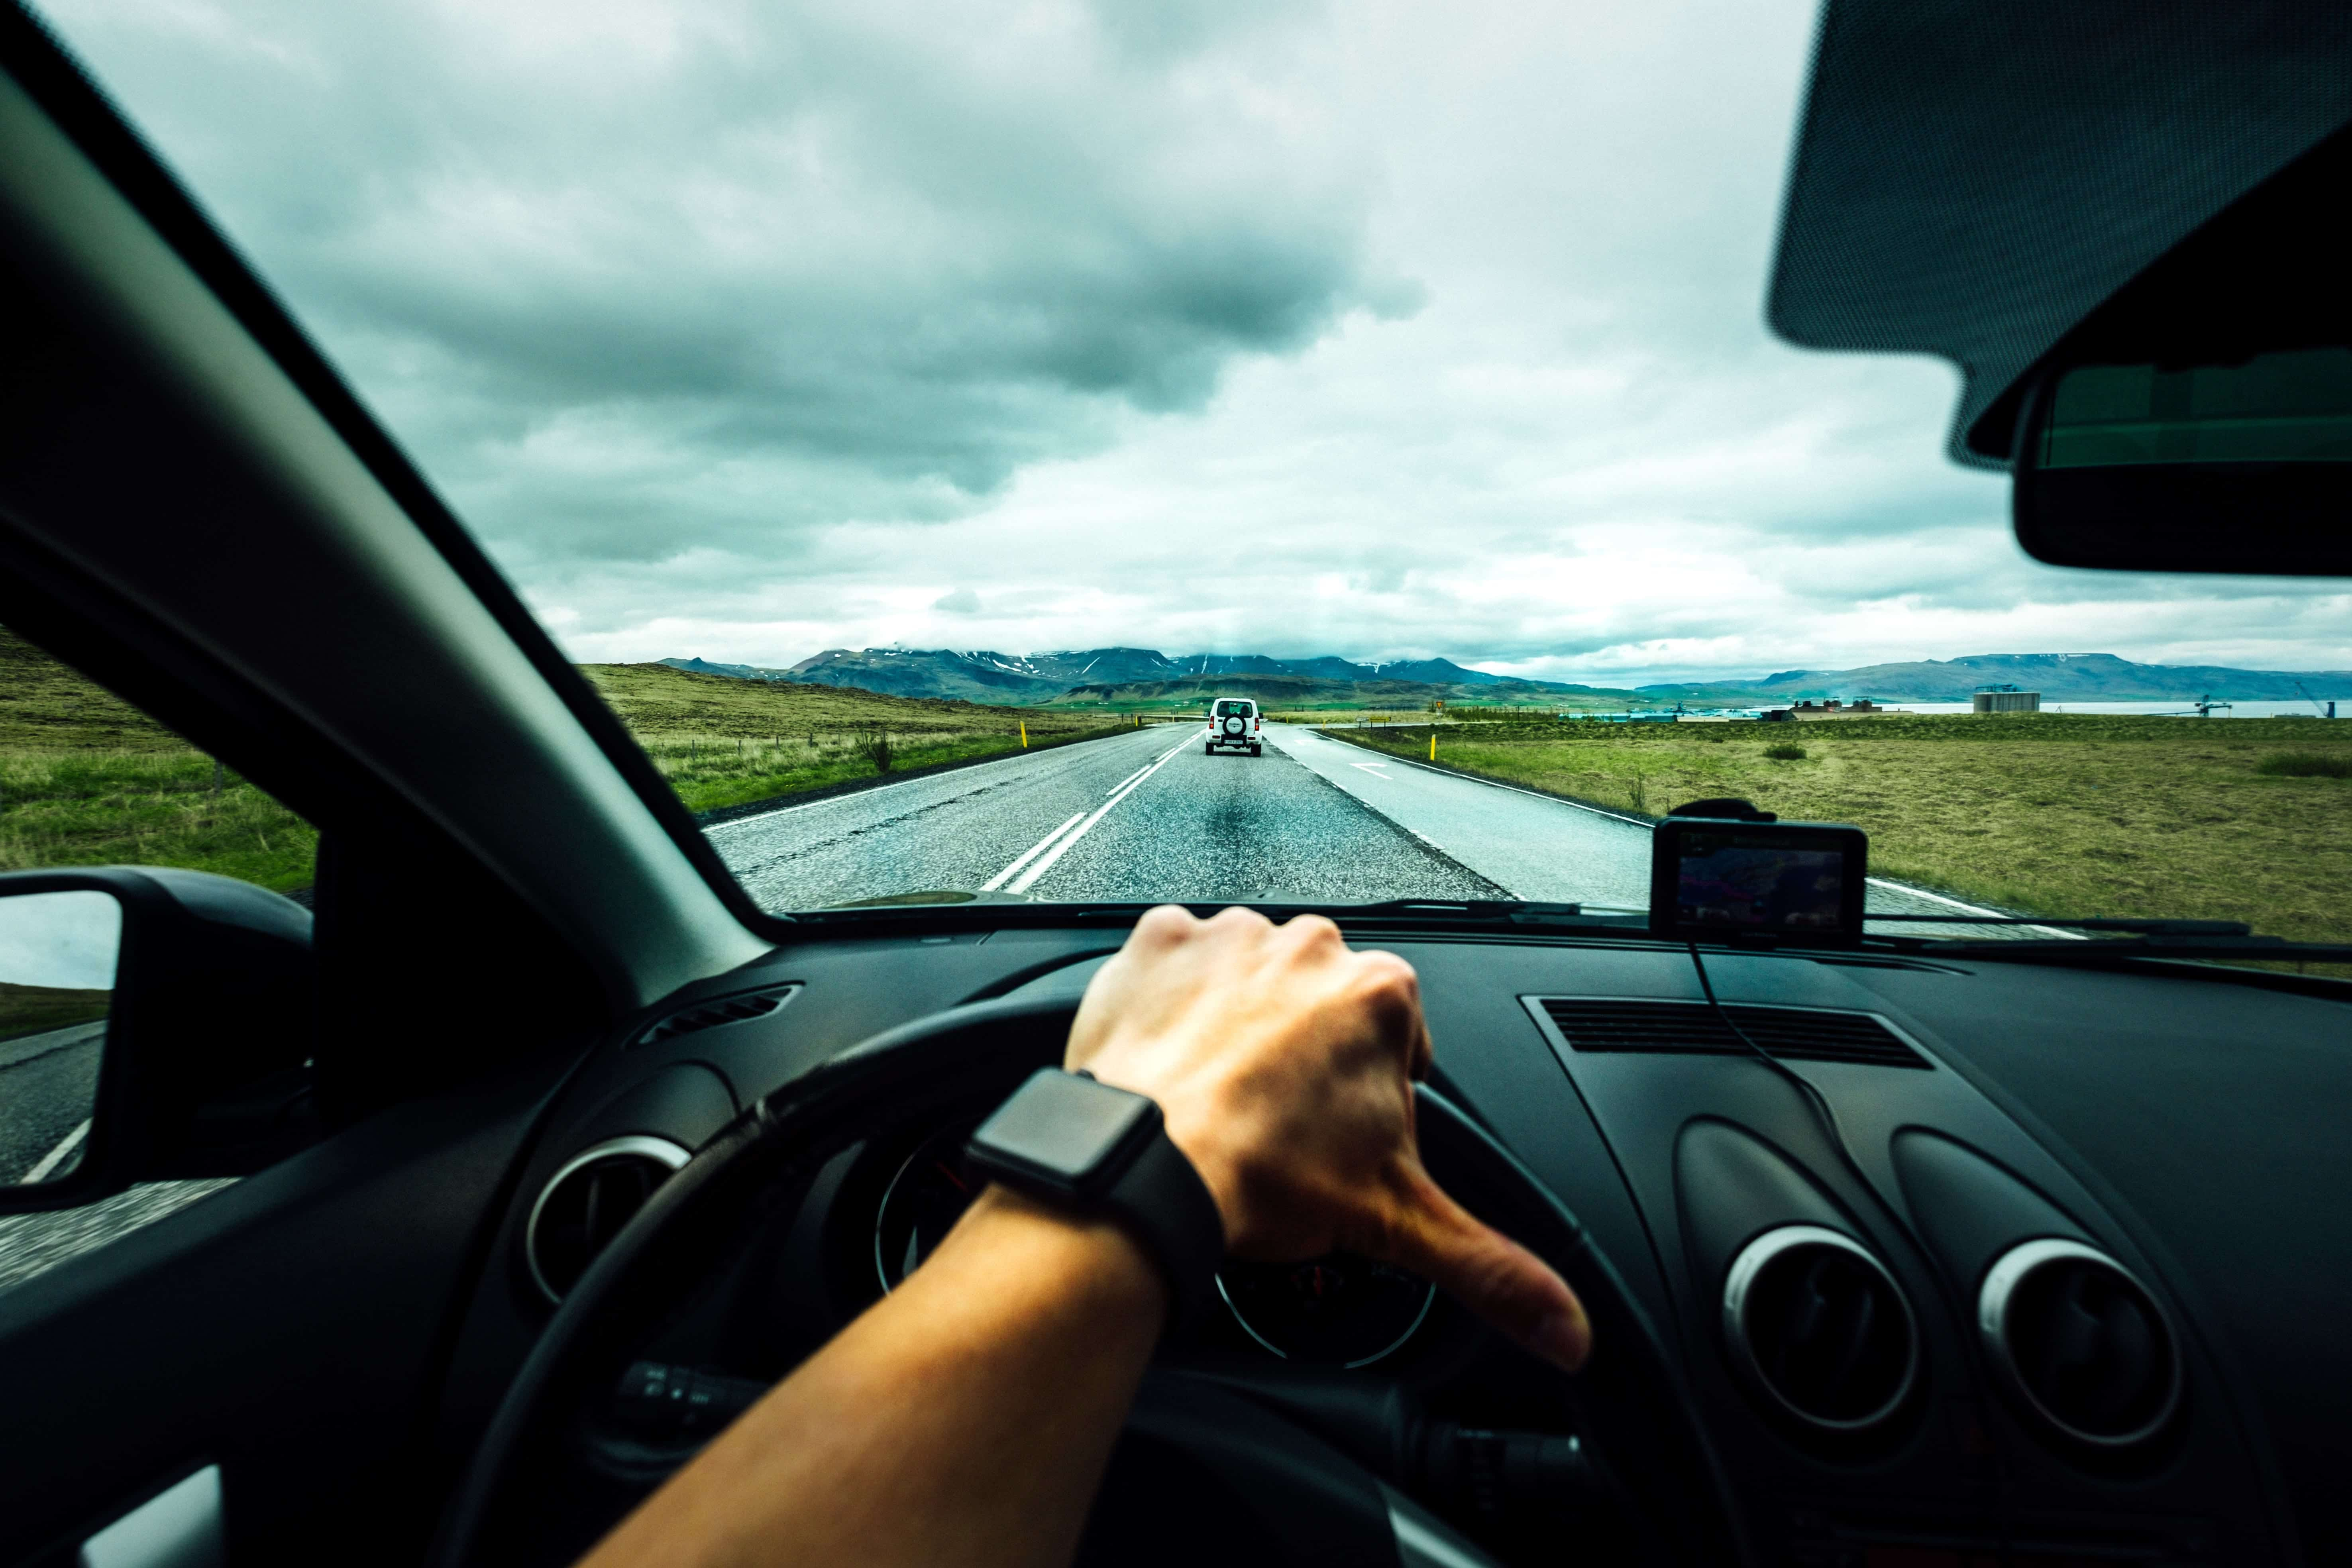 Driving on a cloudy day; image by Tim Foster, via Unsplash.com.